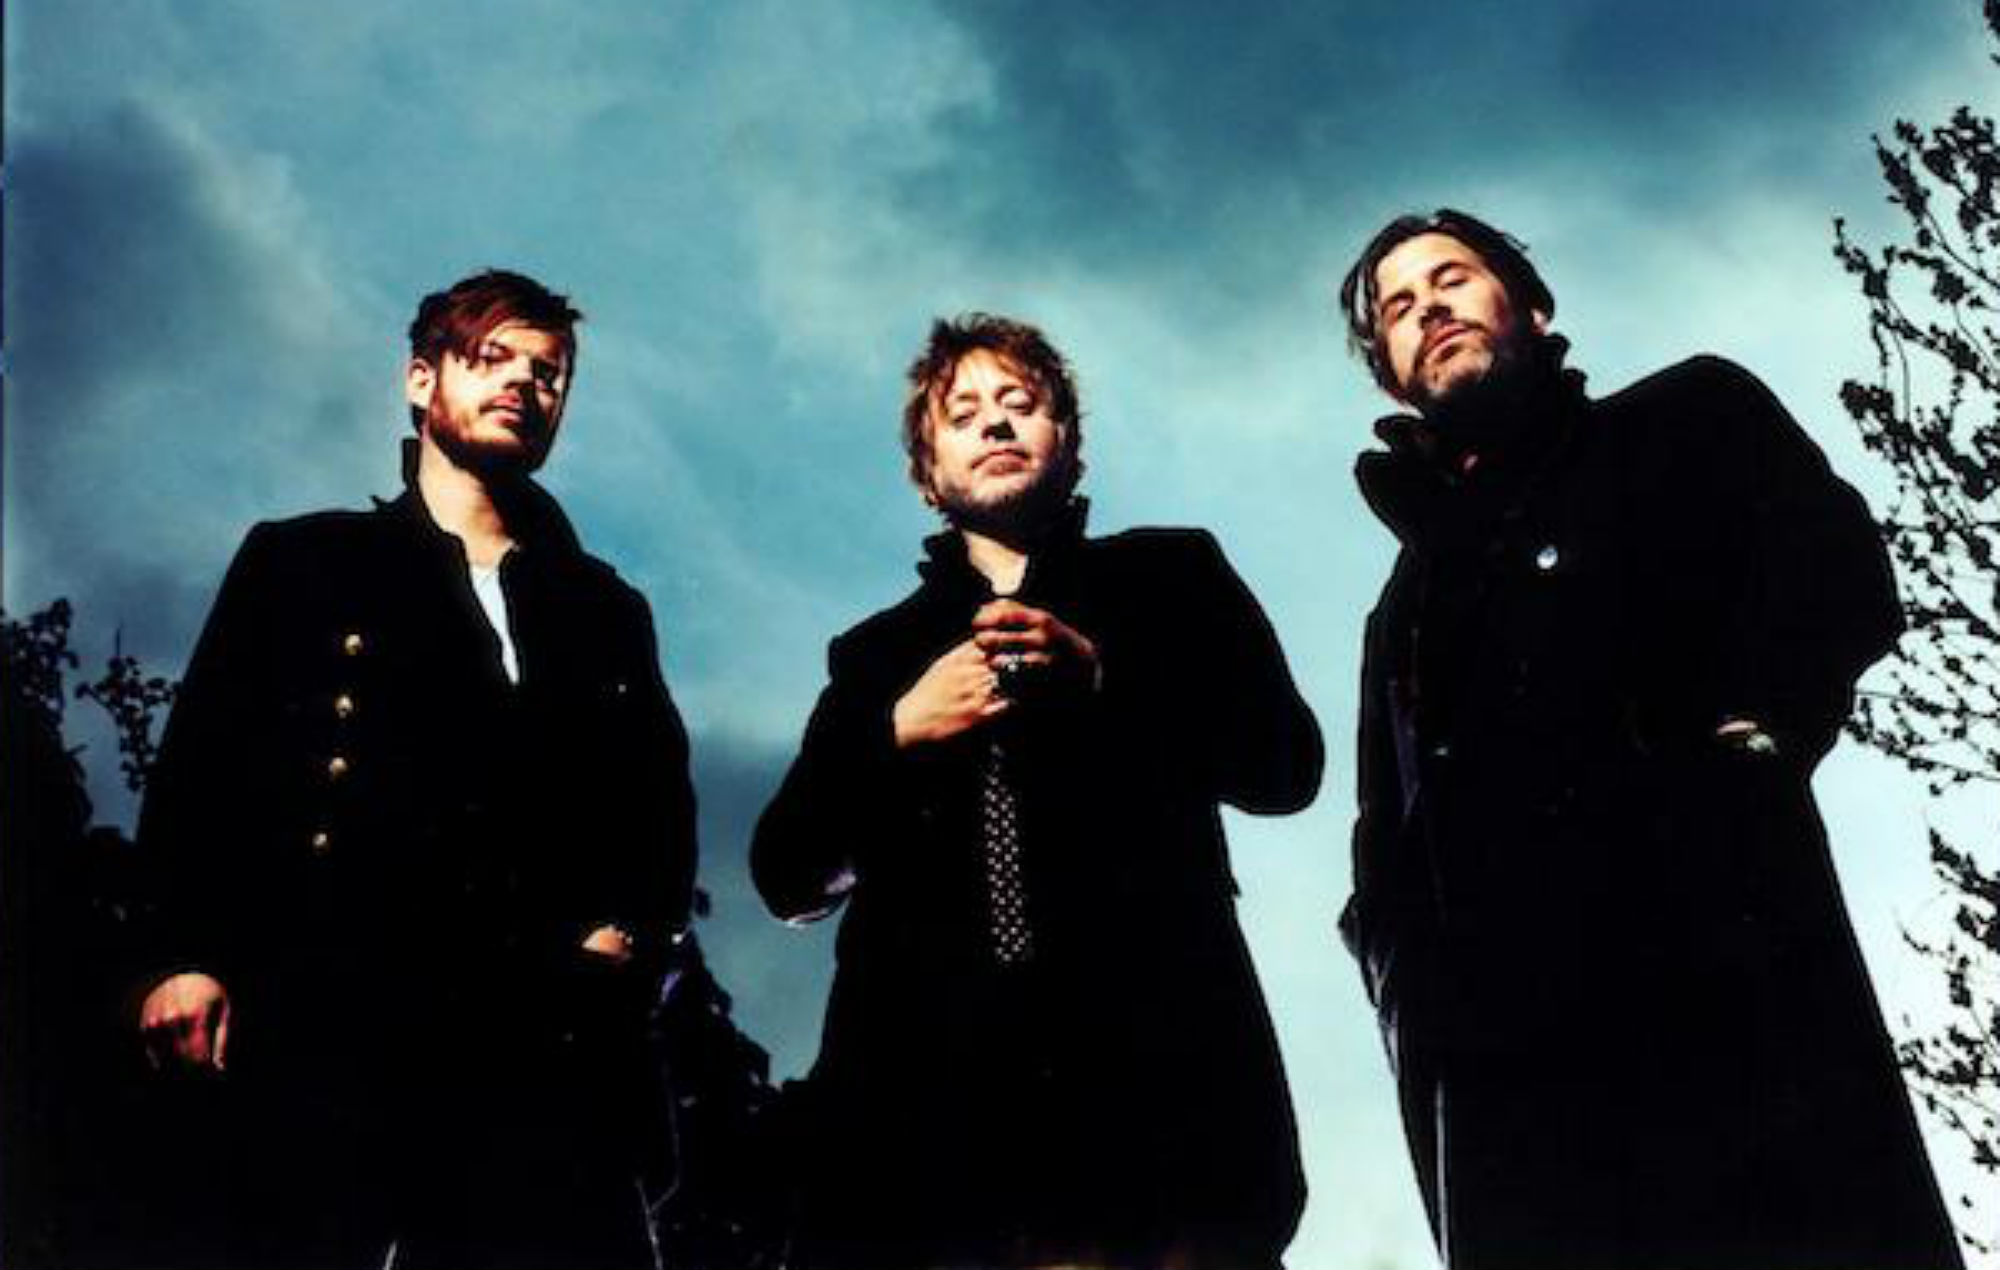 Loup Garoux are formed of The Feeling's Richard Jones, Cass Browne of Gorillaz and Ed Harcourt